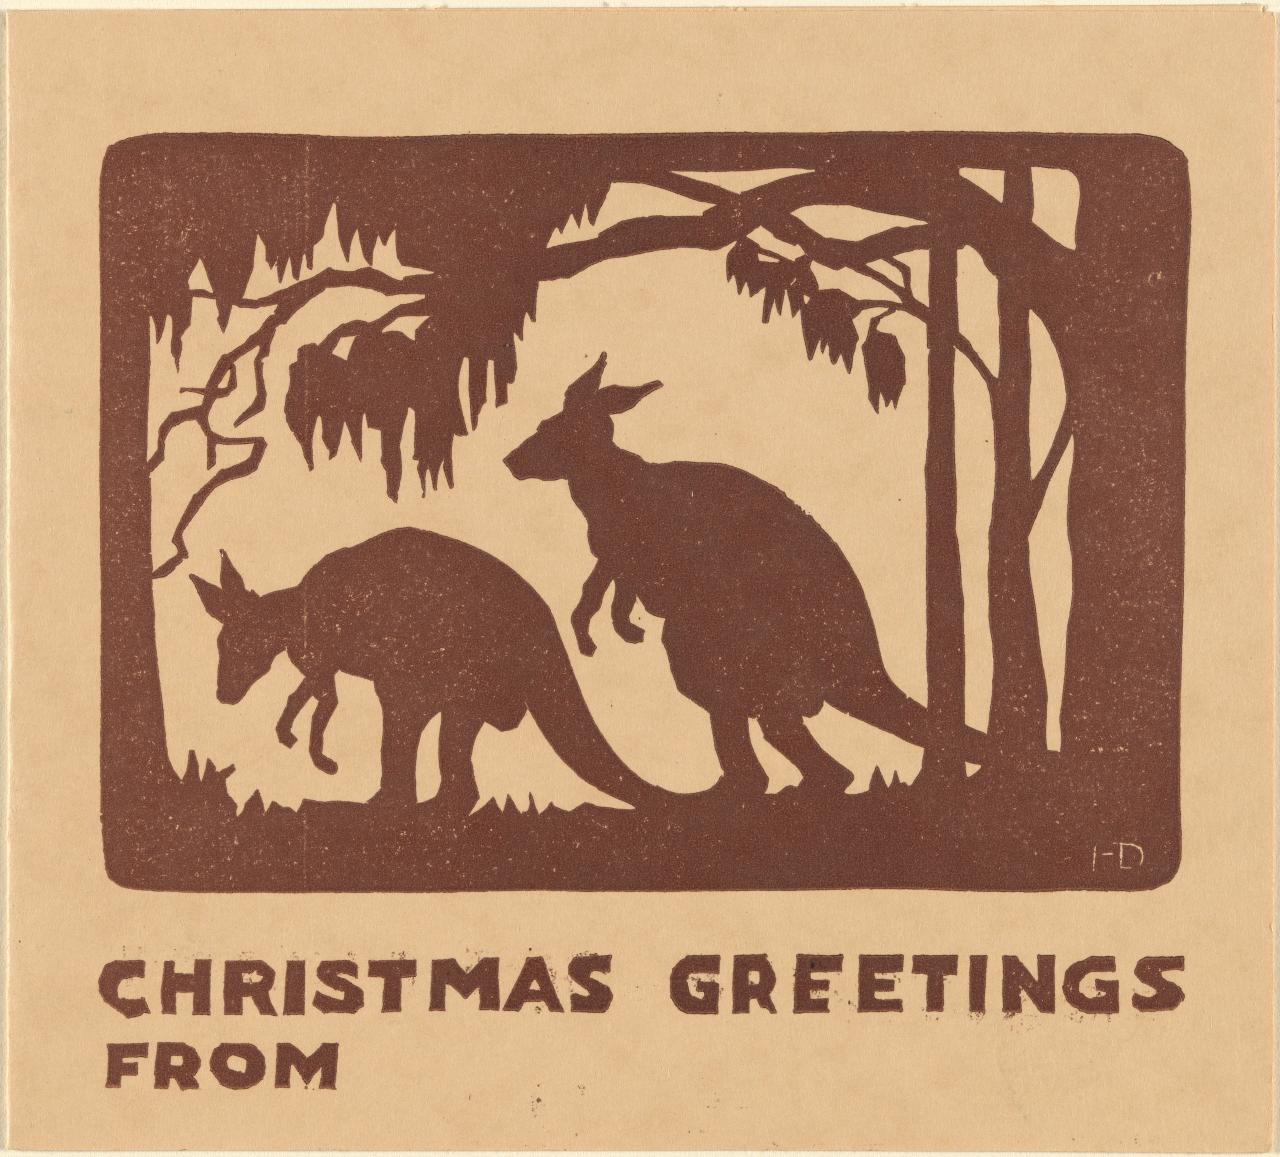 Christmas greetings from (Kangaroos in bush)